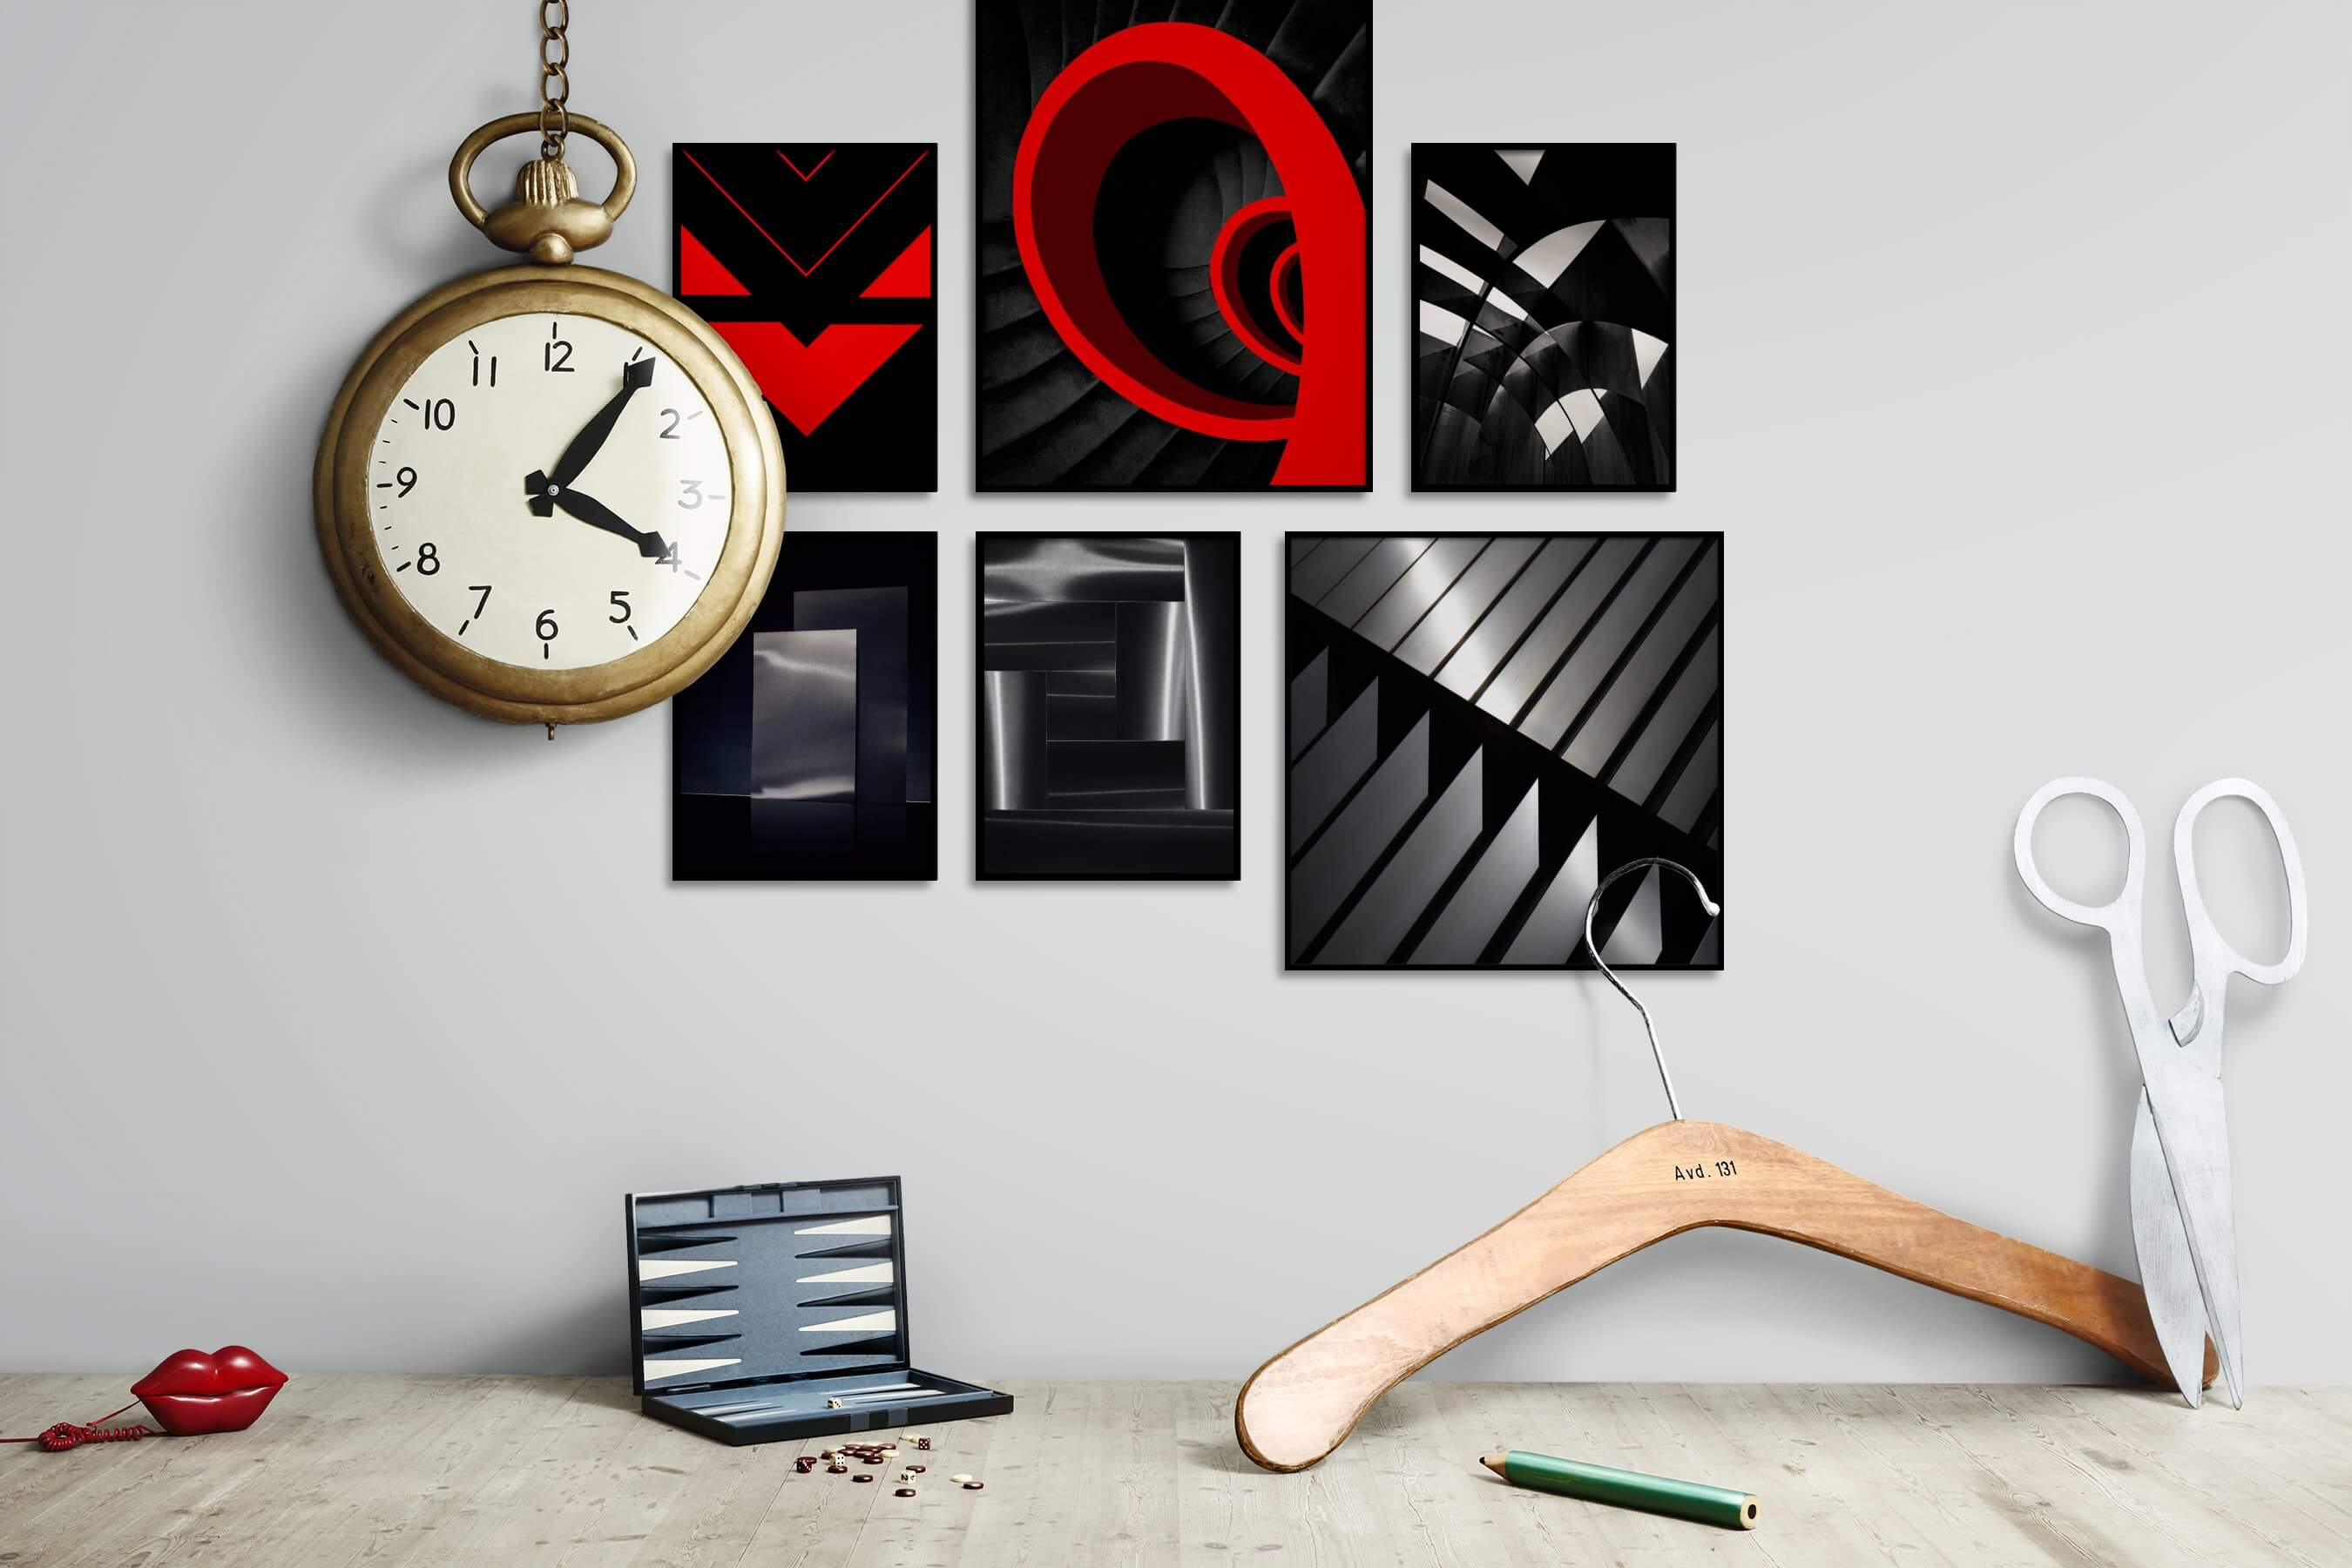 Gallery wall idea with six framed pictures arranged on a wall depicting Dark Tones, For the Minimalist, Colorful, For the Moderate, Black & White, and For the Maximalist